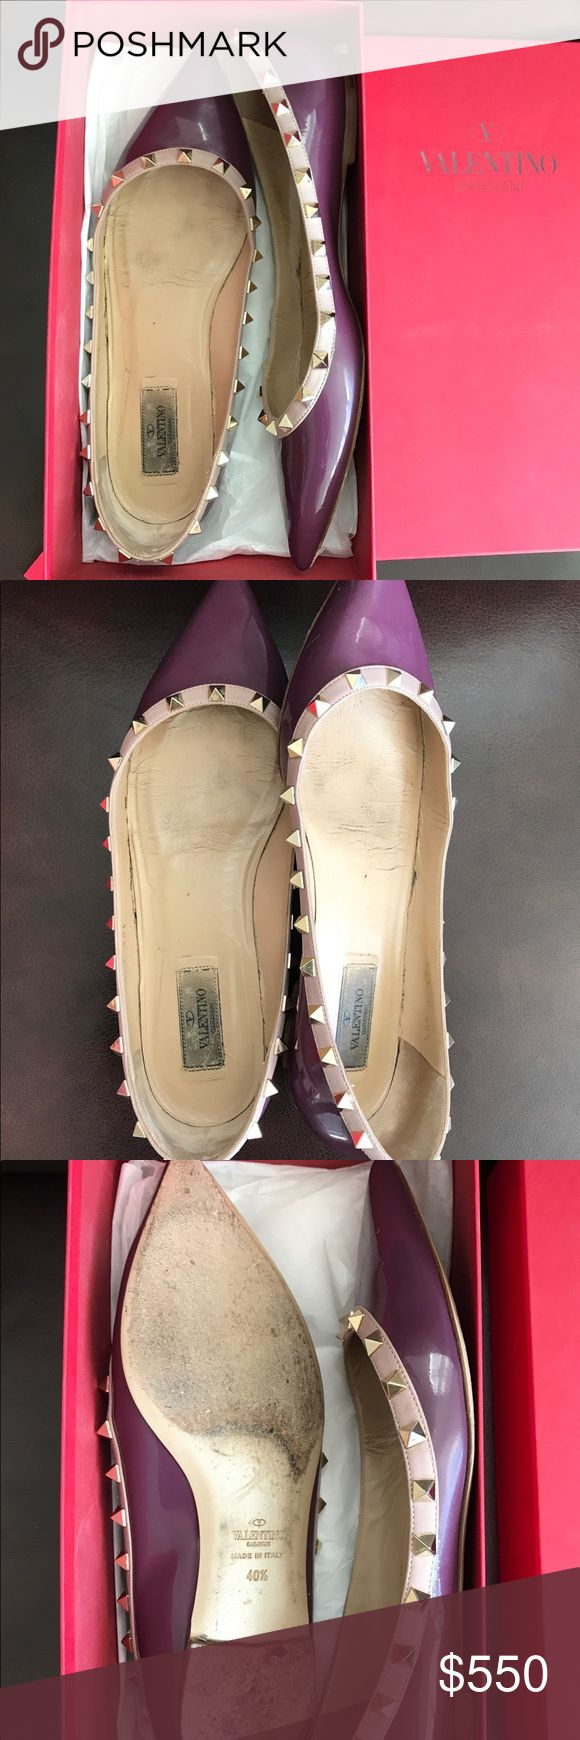 🔥SALE🔥Valentino Rockstud flats Valentino rockstud flats in eggplant like purple color. Comes with the box. Originally $850 incl tax. They have been worn and used. before. Still in good shape.  Please look at all the pics, I'll be happy to answer any questions.  Price firm. Valentino Shoes Flats & Loafers